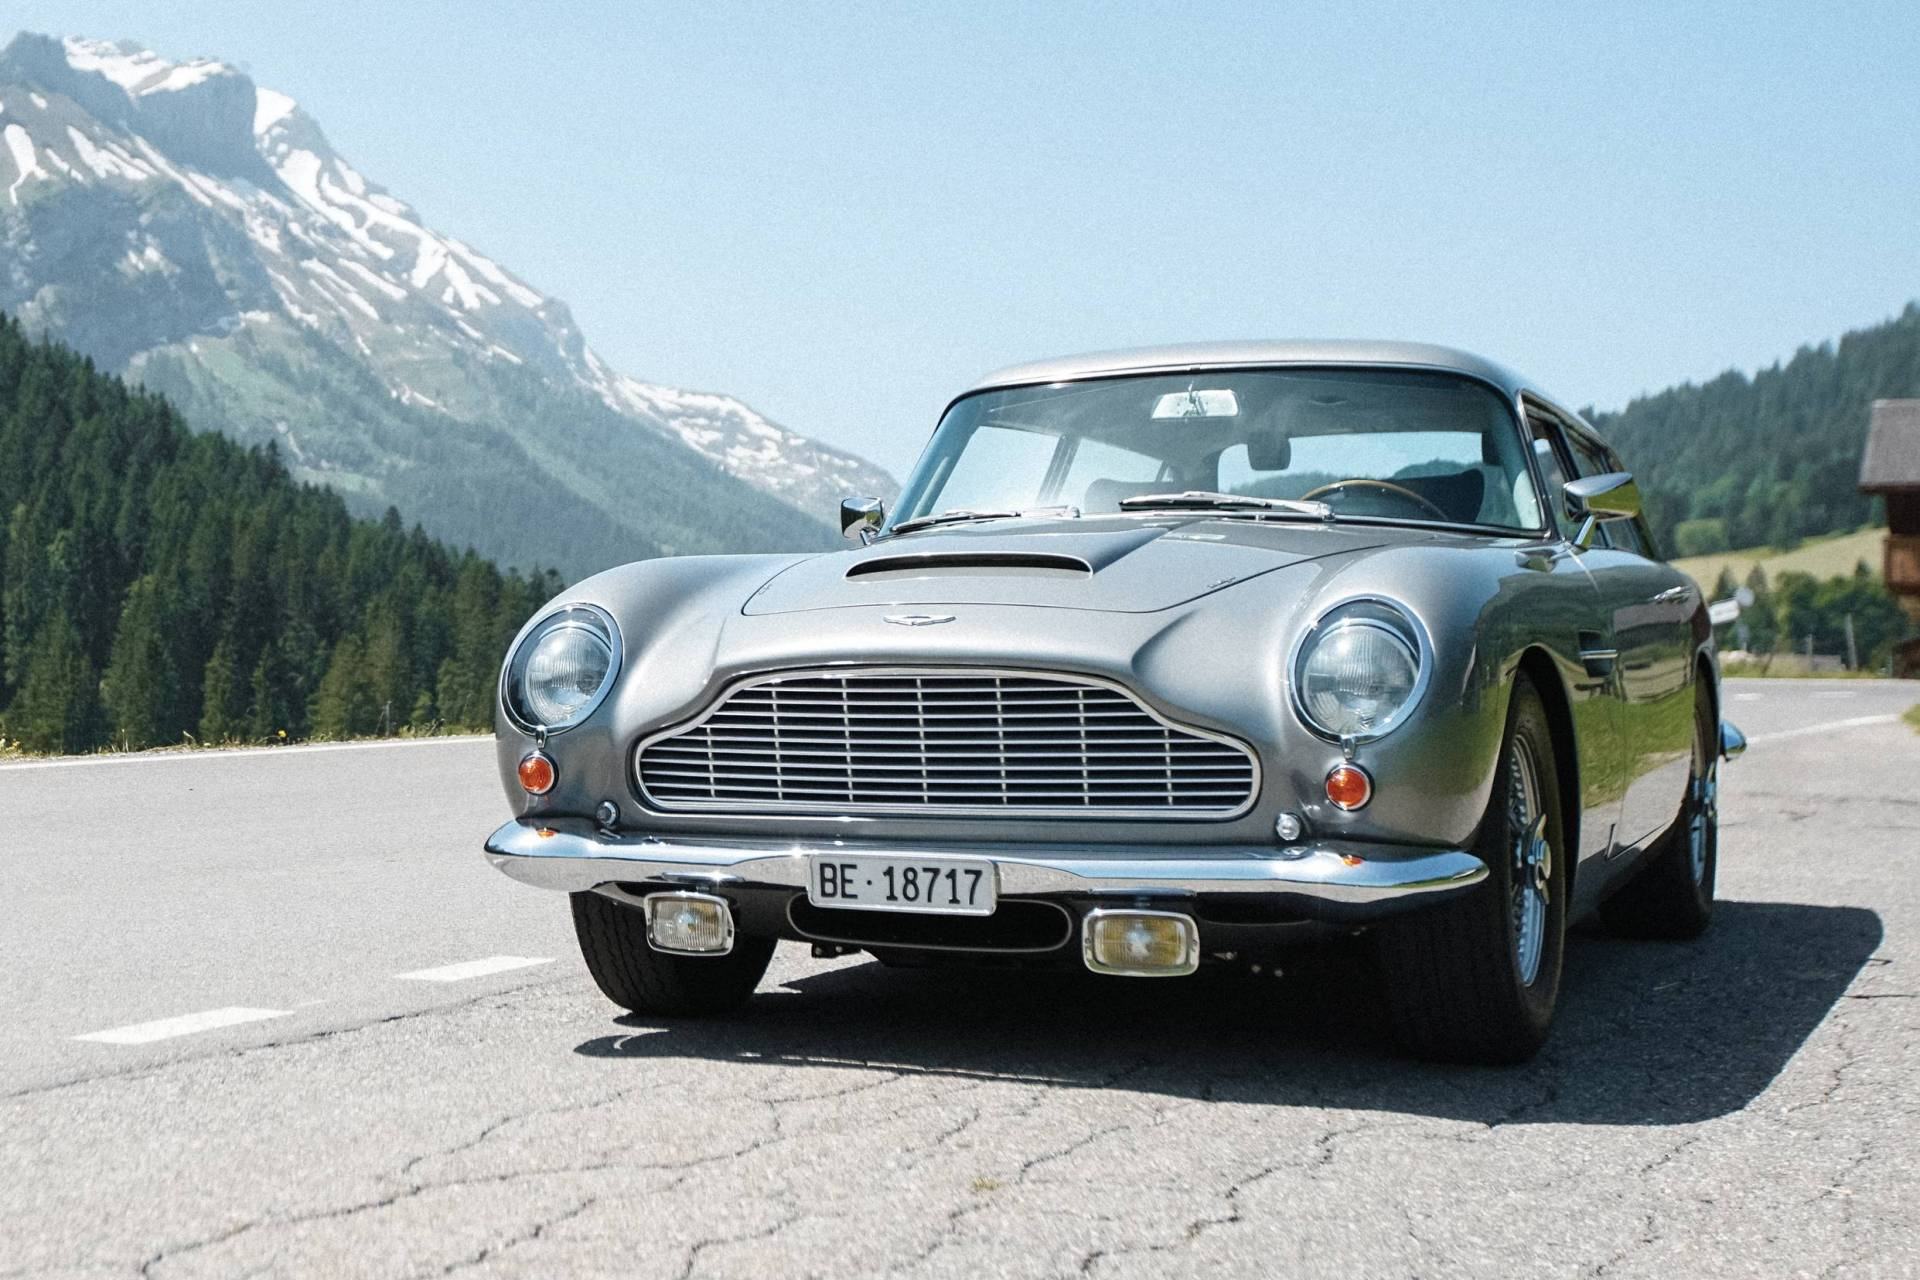 Despite its impressive engine power and renown as James Bond's ride of choice, the Aston Martin DB5 has never been too popular among the wide audience. The reason? Lack of inside space.